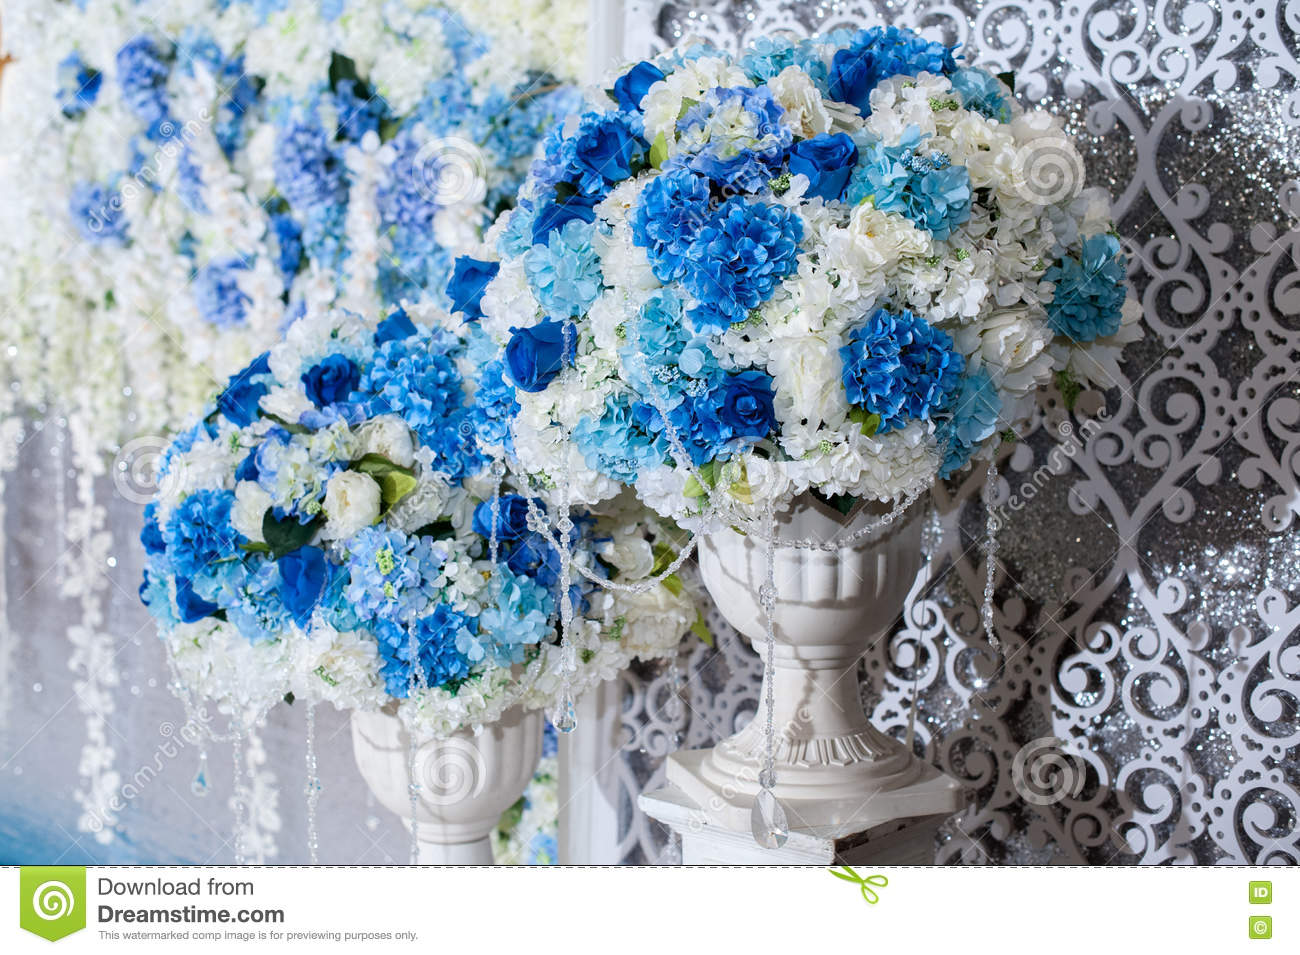 Blue flower on vases stand setting for Decorate with wedding backdrop for wedding party. Beautiful bouquet in a vase on a background of a wedding arch. & Flower On Vases Stand Setting For Decorate With Wedding Backdrop ...